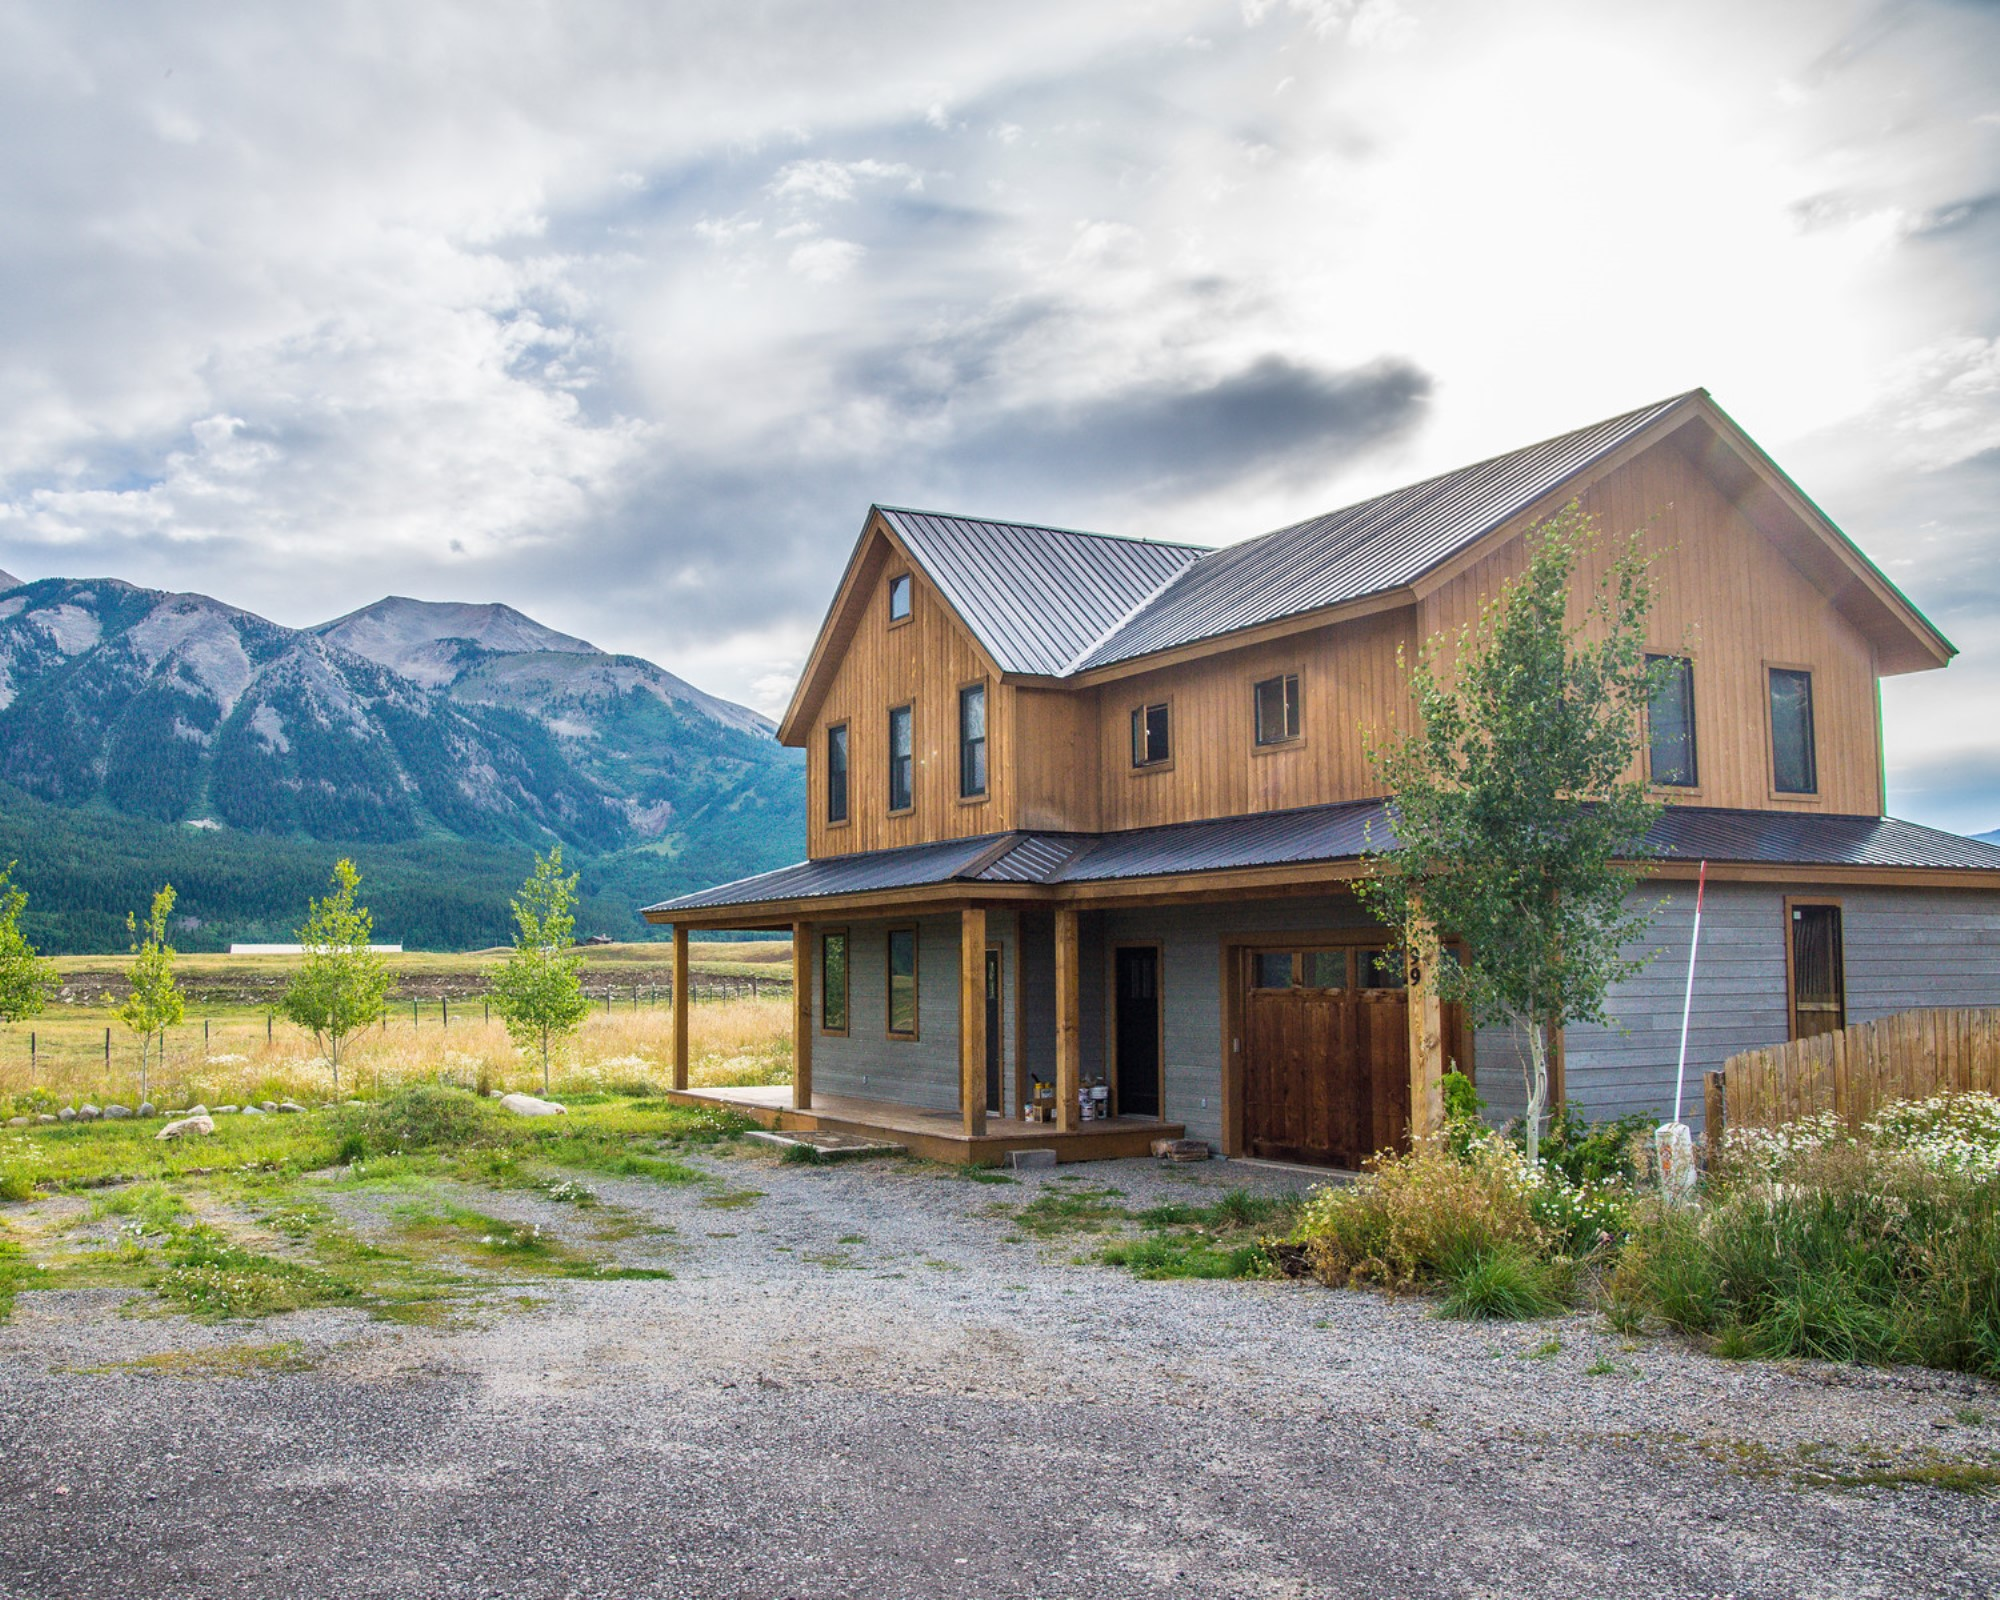 Single Family Home for Sale at Modern Mountain Living 99 Bridal Spur Way Crested Butte, Colorado 81224 United States